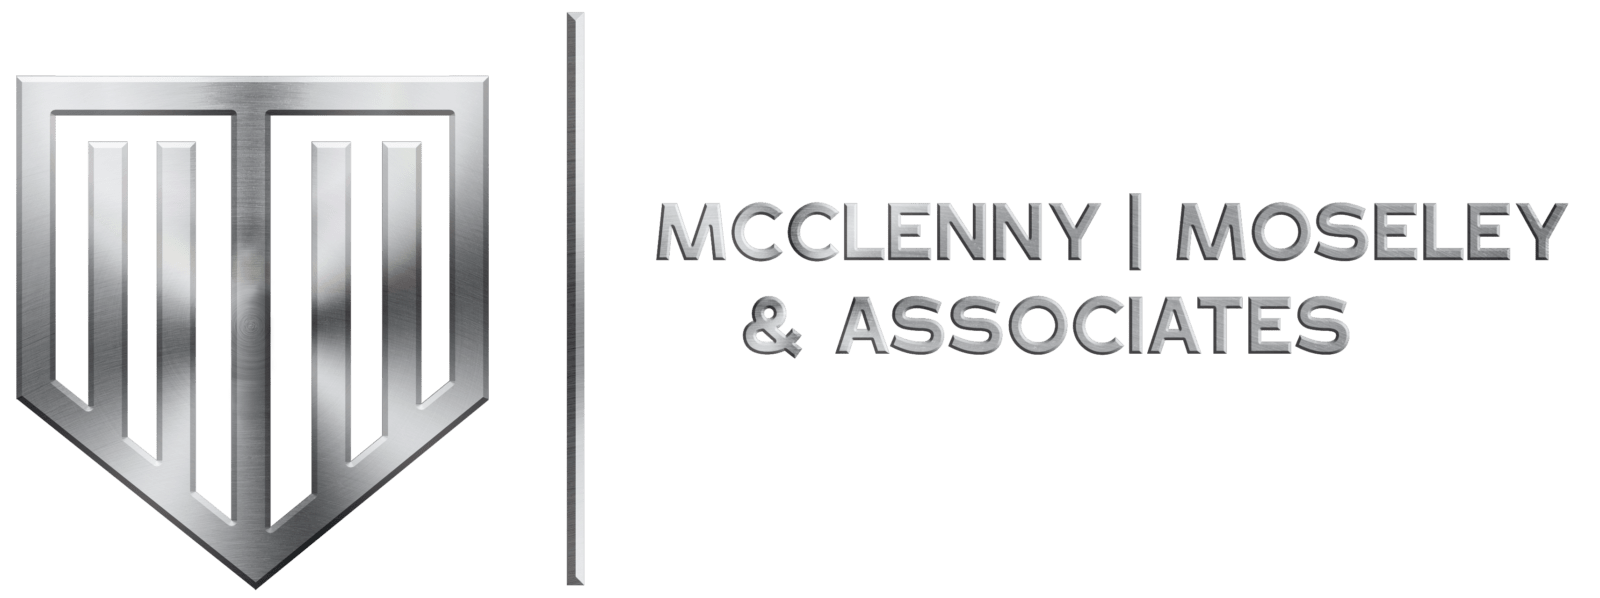 McClenny, Mosley & Associates RoofCon 2020